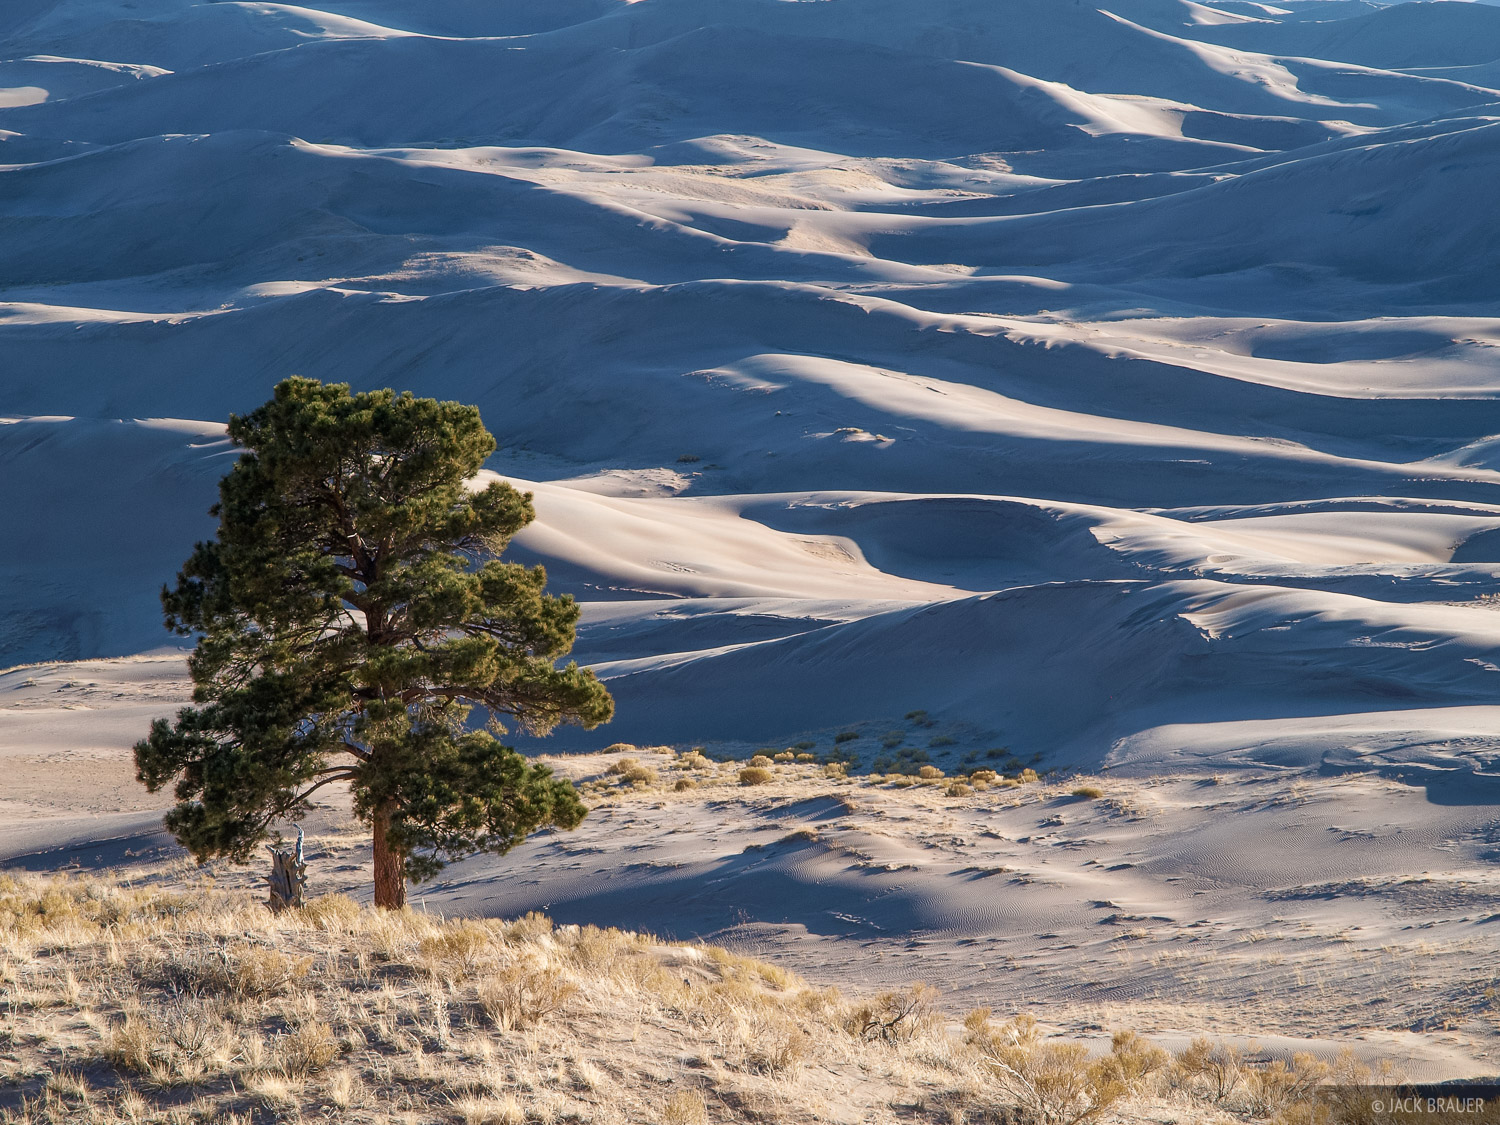 As you hike up the Sand Ramp Trail along the eastern side of the dunes at the foot of the Sangre de Cristo mountains, it's amazing...